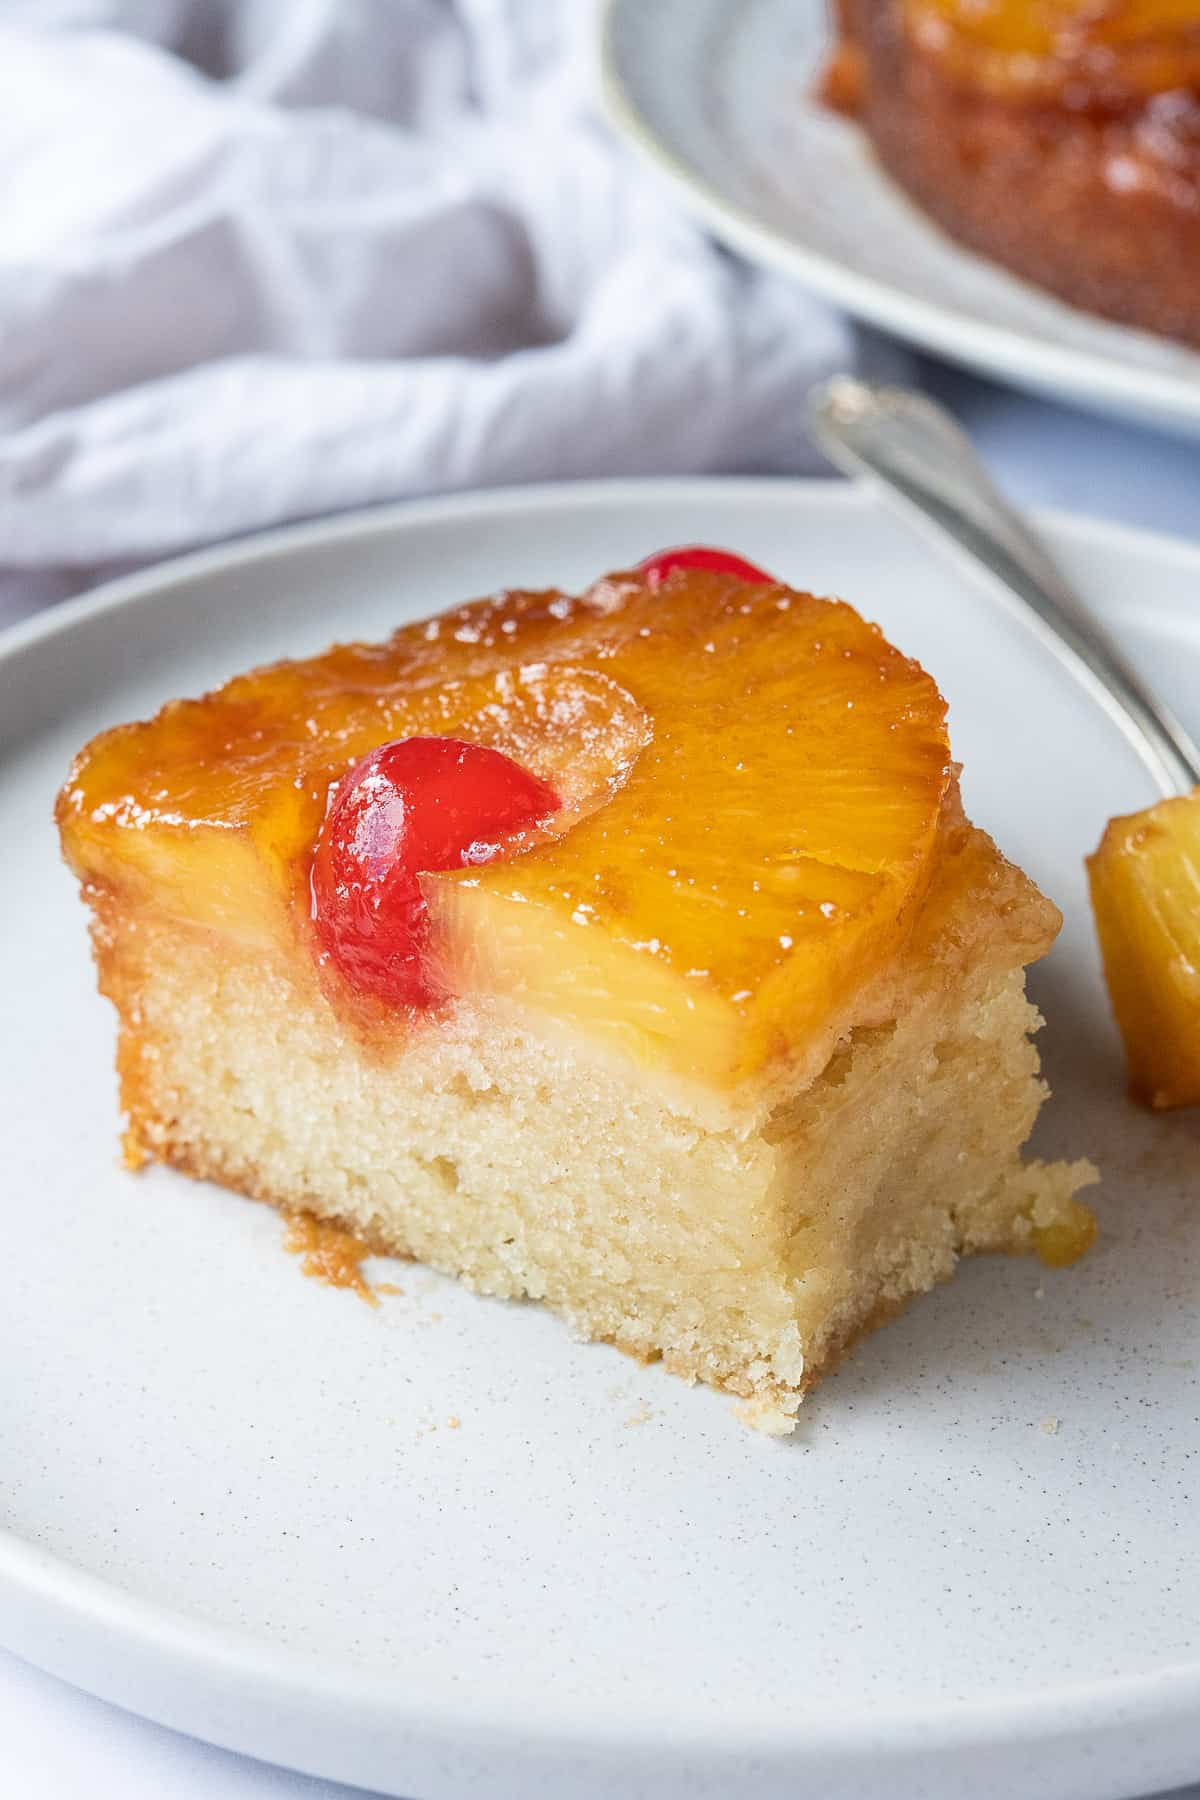 A slice of vegan pineapple upside-down cake with a forkful removed.